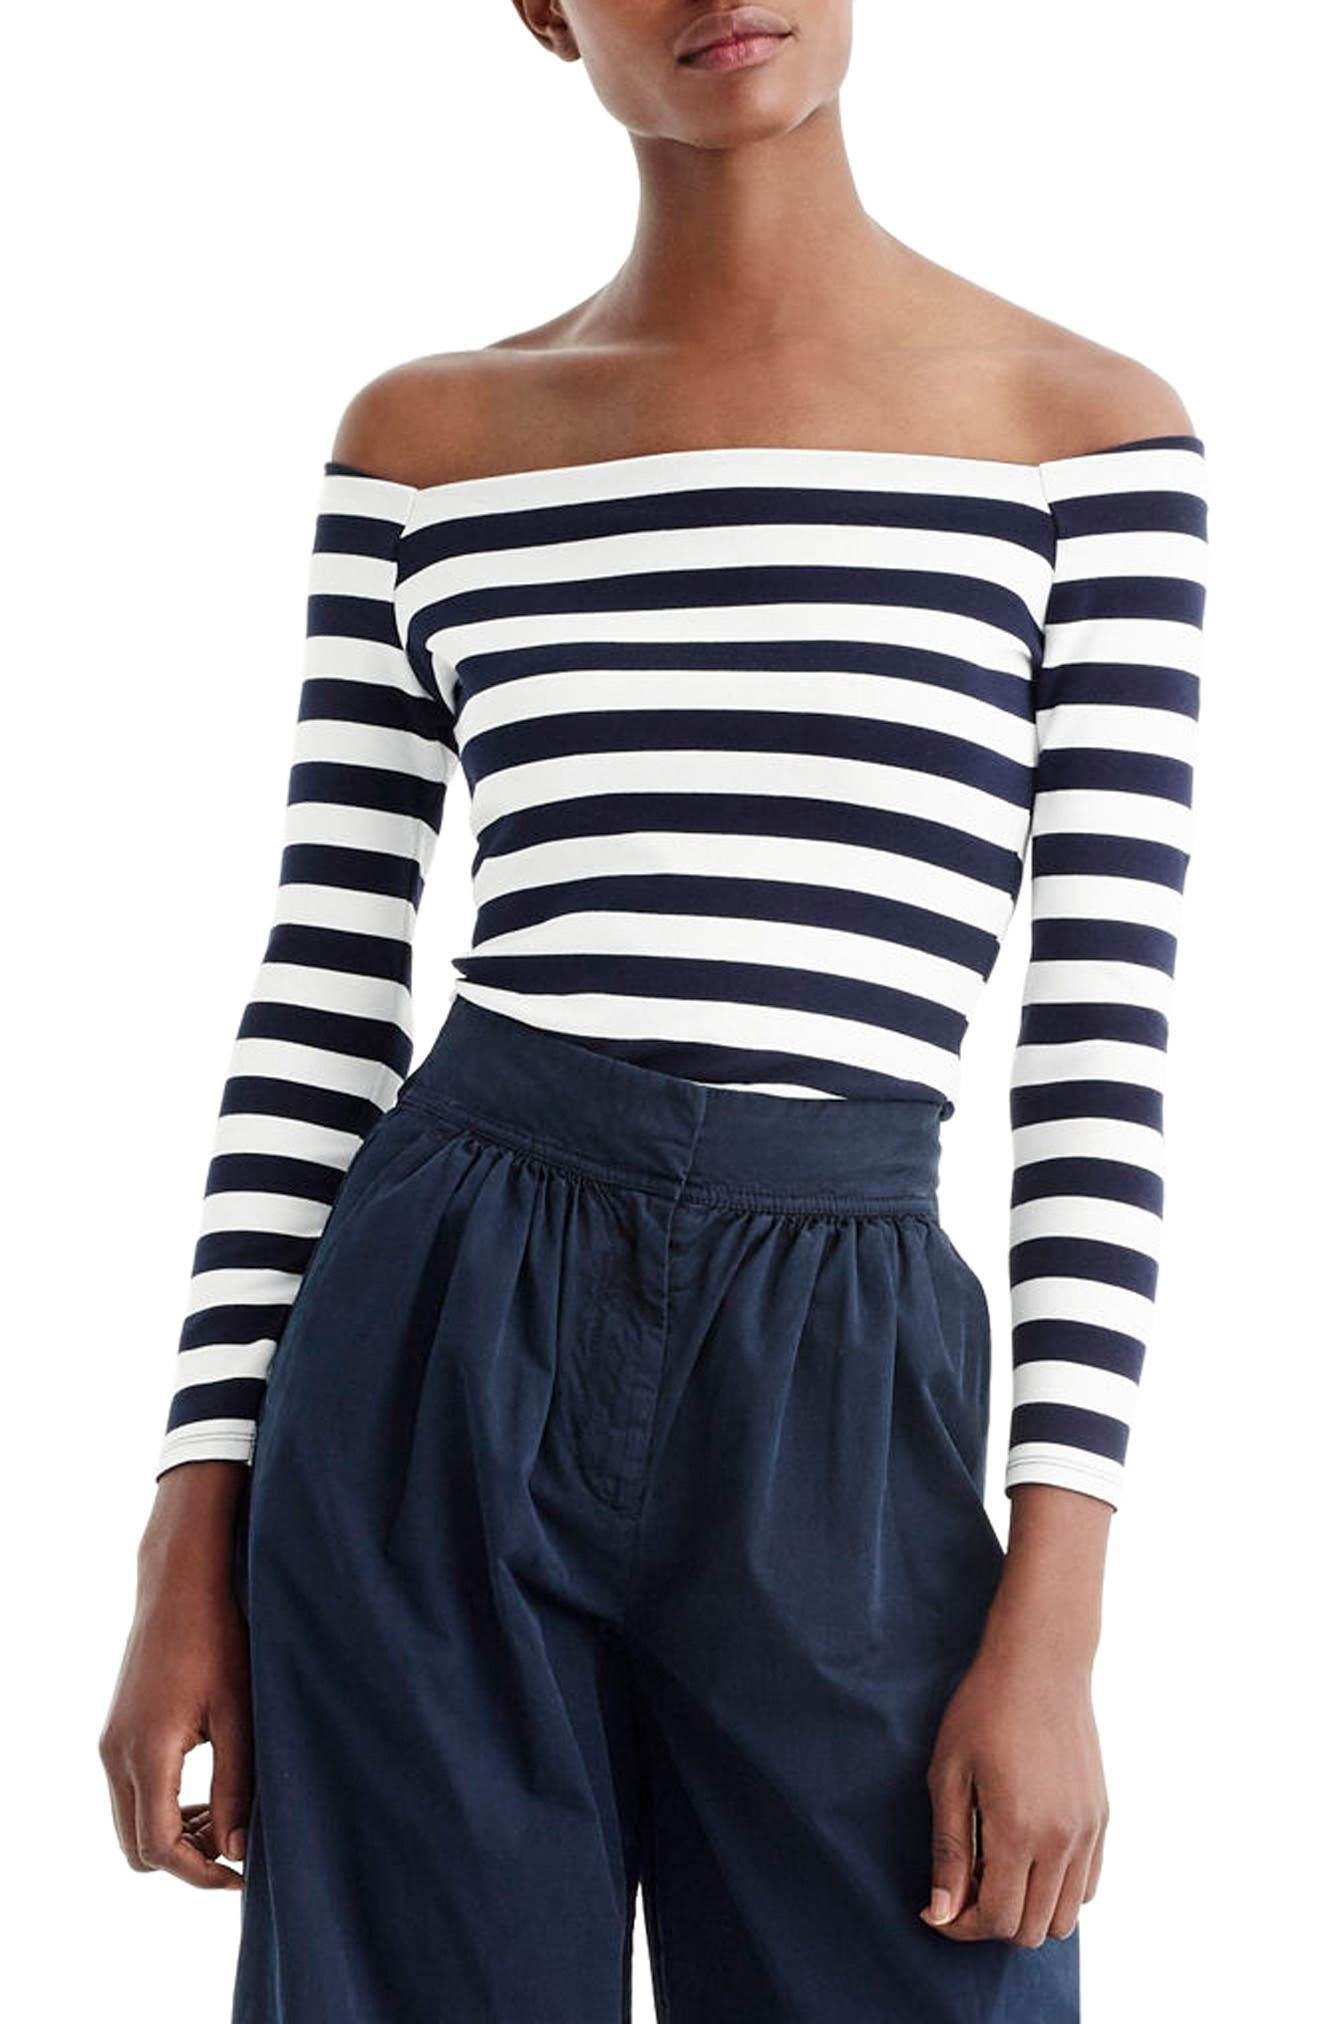 J.Crew Stripe Off the Shoulder Tee